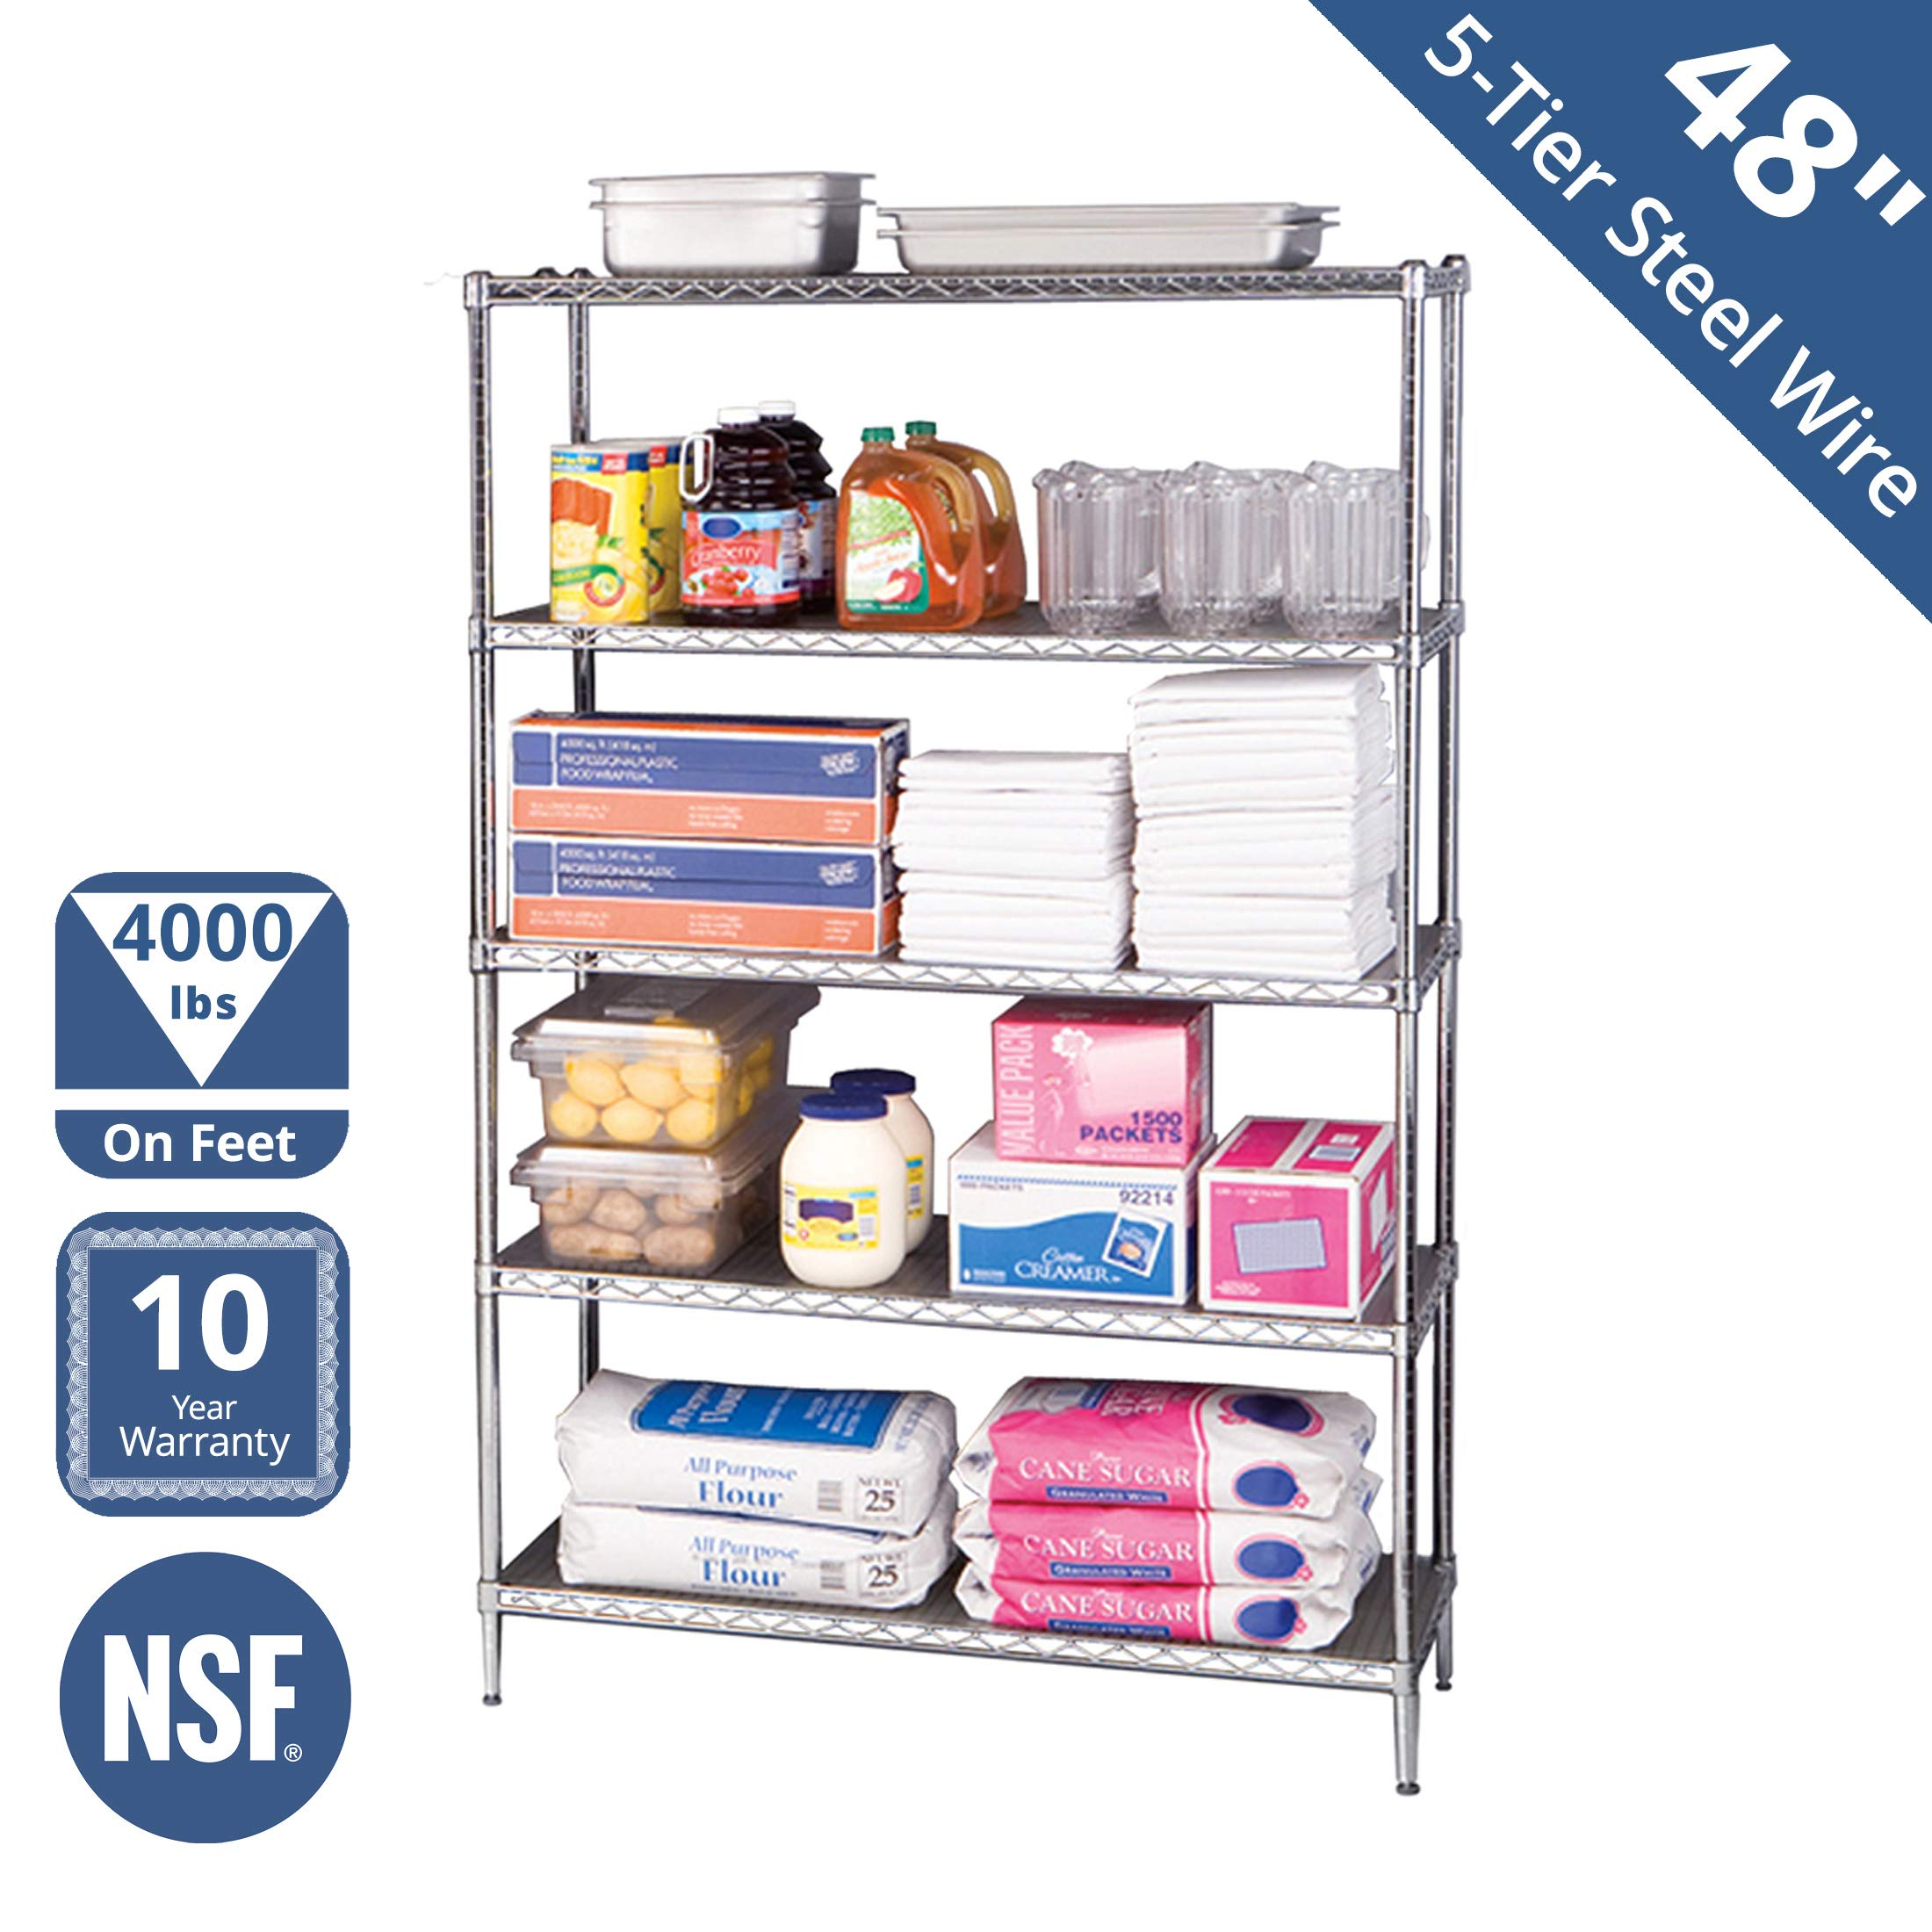 Seville Classics UltraDurable Commercial-Grade 5-Tier NSF-Certified Steel Wire Shelving with Wheels, 48'' W x 18'' D x 72'' H, Chrome by Seville Classics